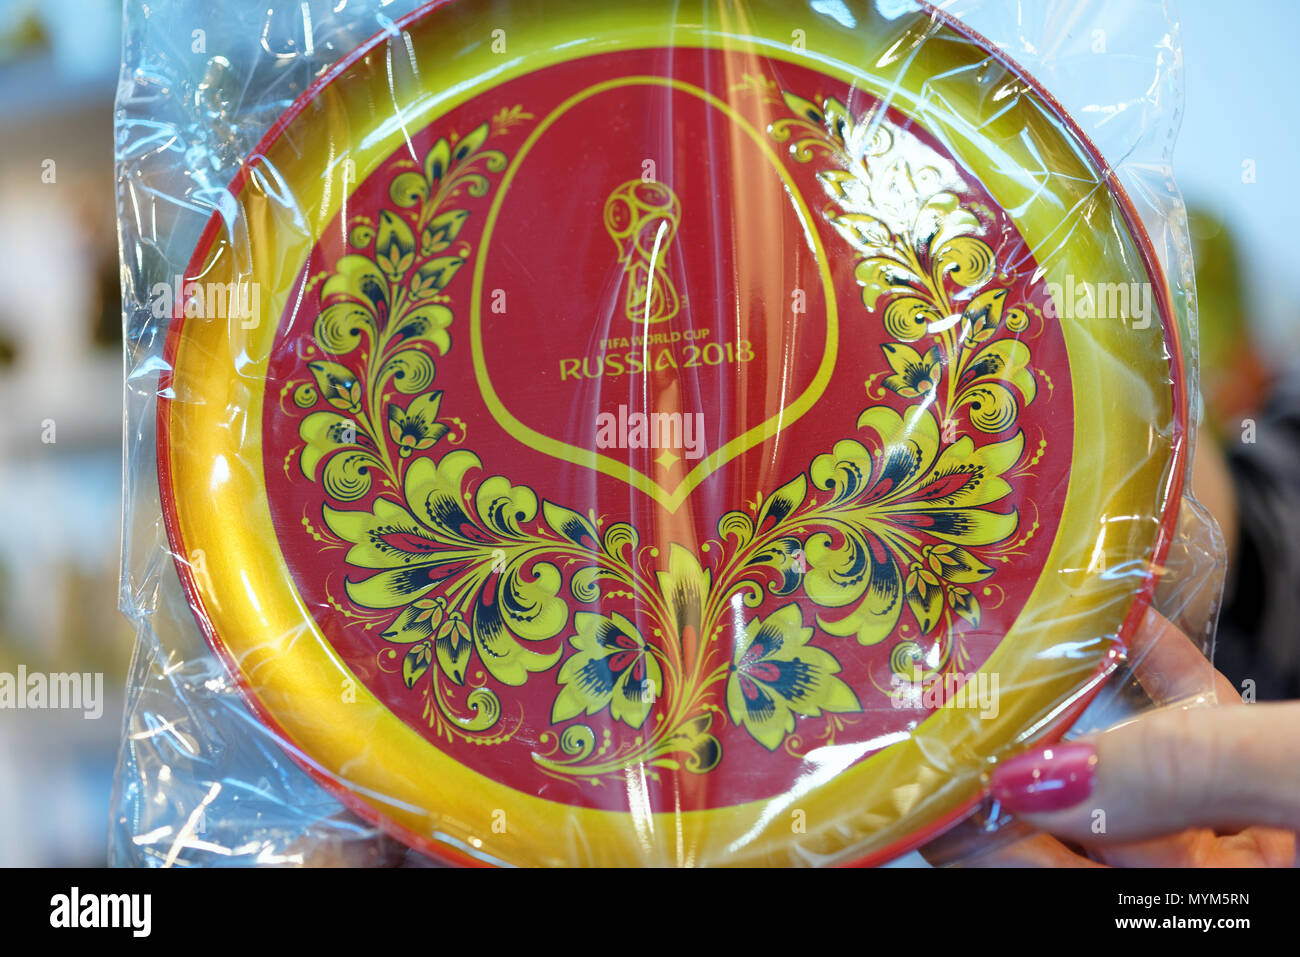 St. Petersburg, Russia - May 31, 2018: Official Khokhloma painted souvenirs of FIFA World Cup 2018 presented on the fair Nevsky Larets. Khokhloma is a - Stock Image